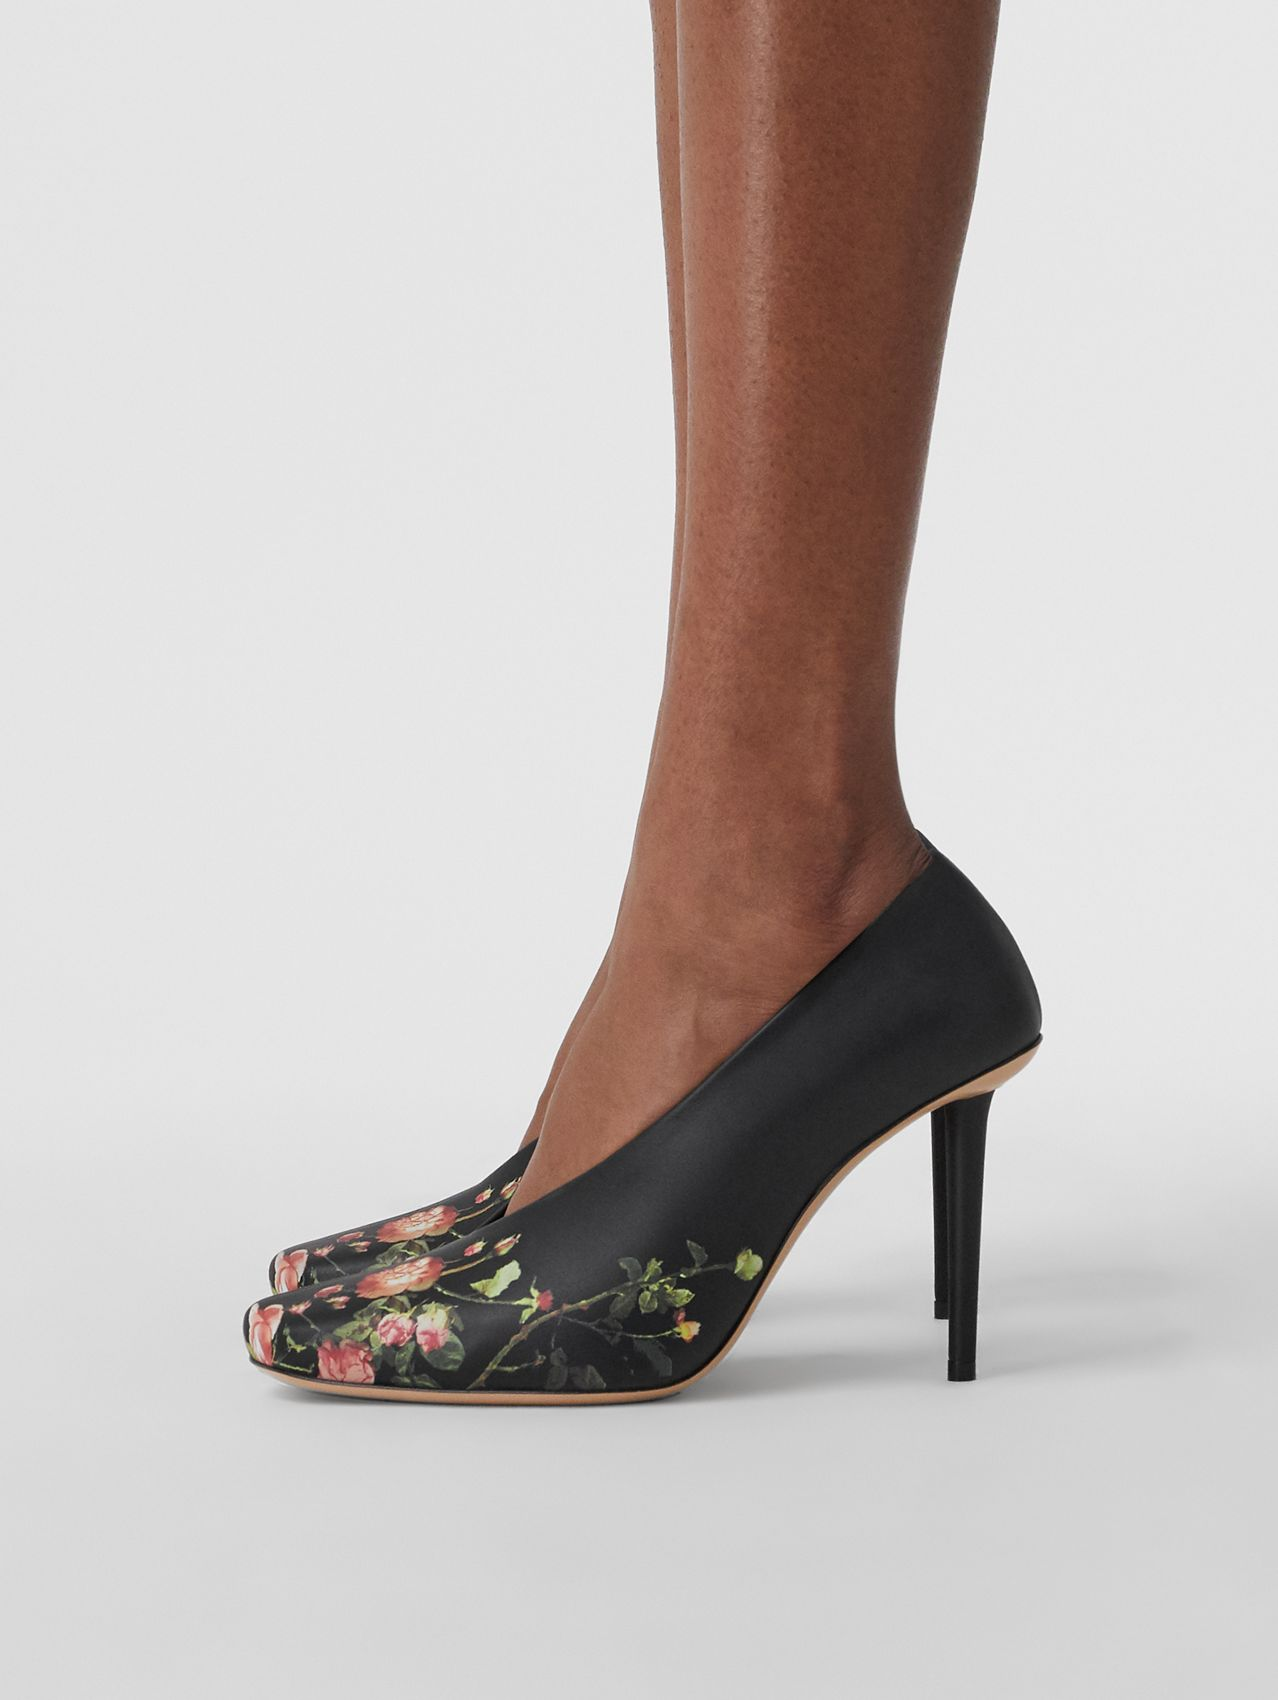 Rose Print Leather Sculptural Pumps in Floral